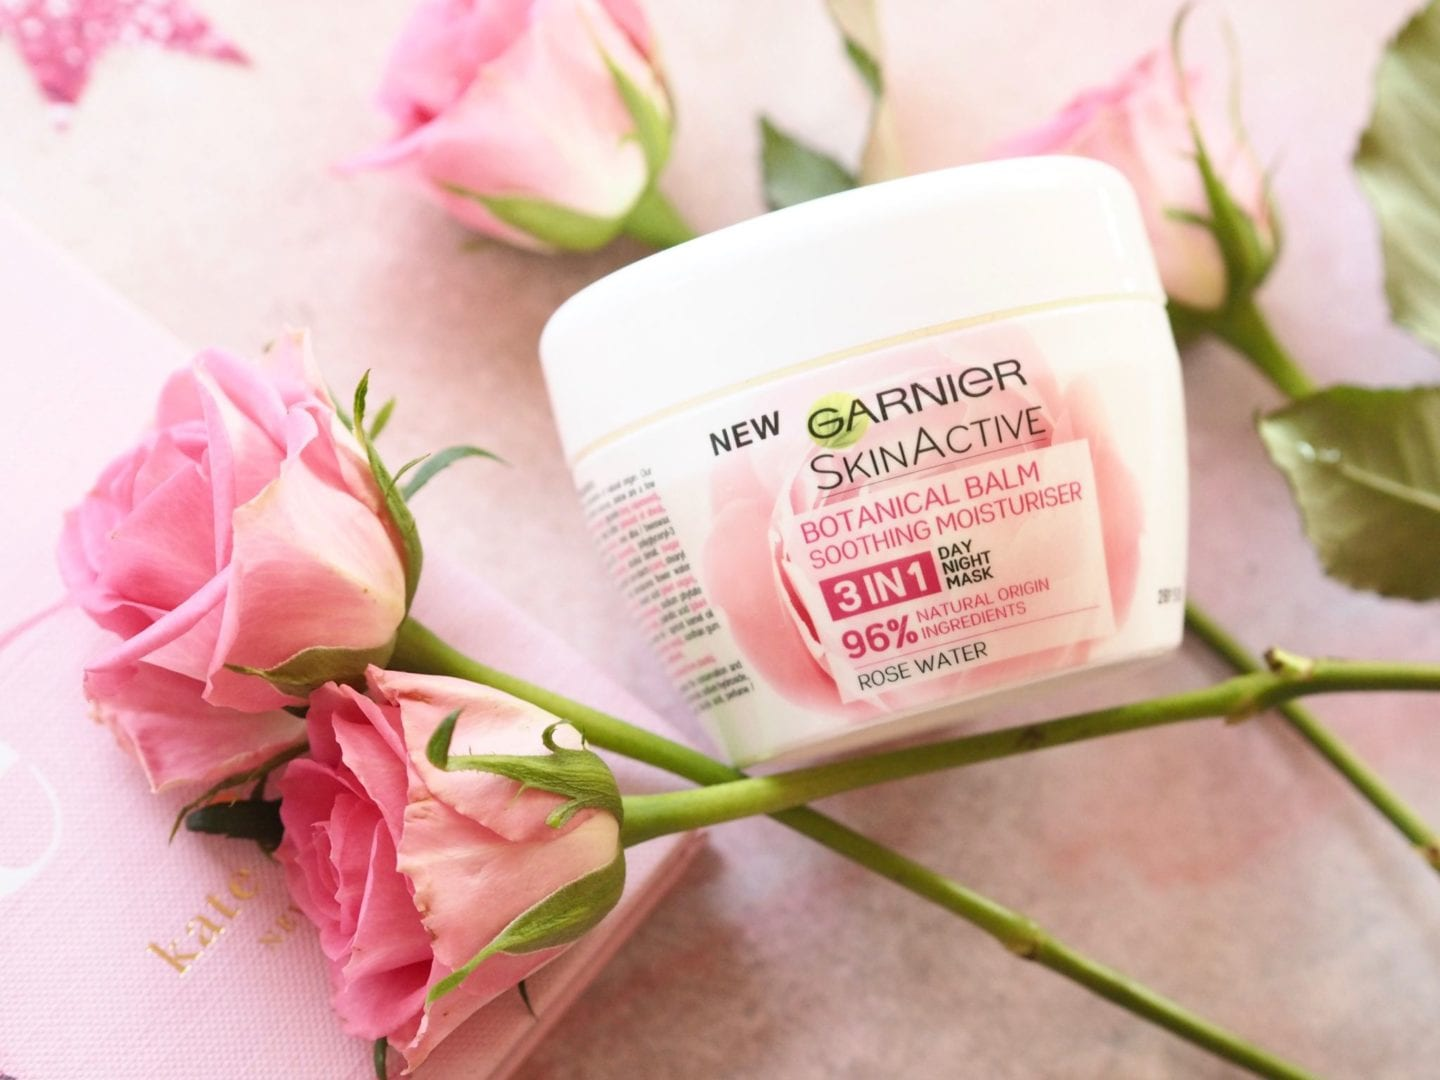 Garnier 'Rose Water' Botanical Balm